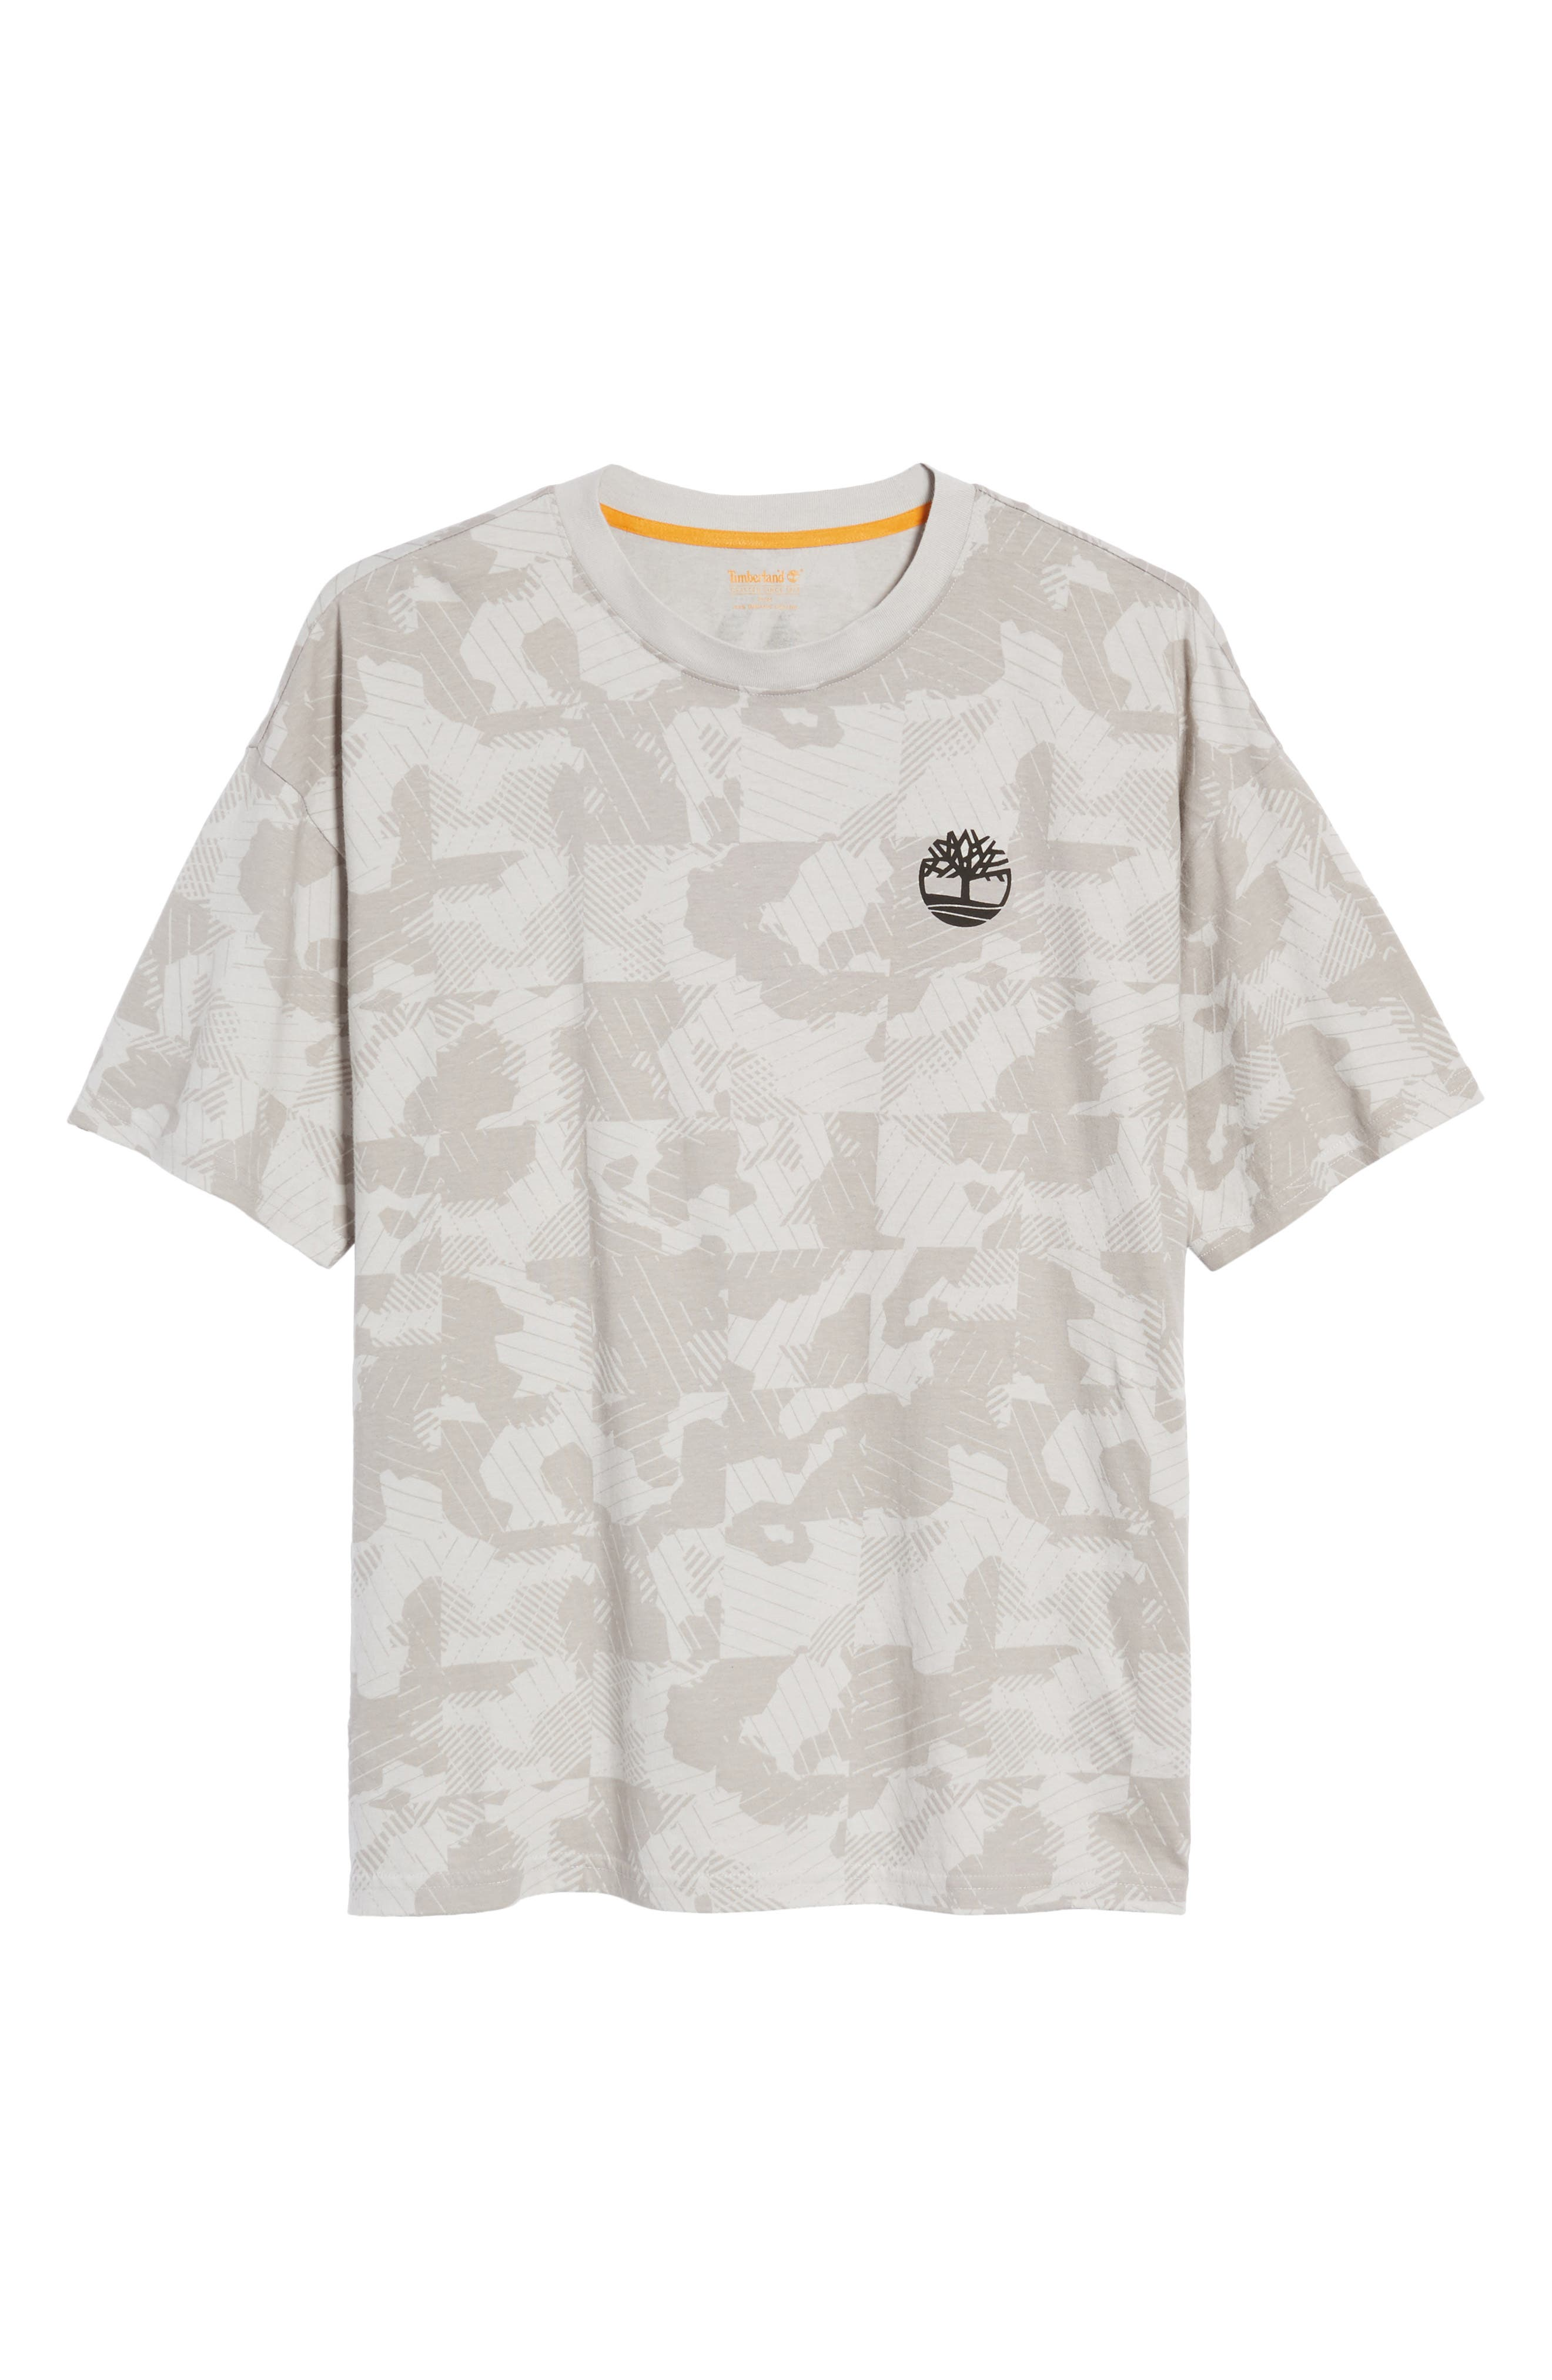 Disruptive Crewneck T-Shirt,                             Alternate thumbnail 6, color,                             Micro Chip Camo